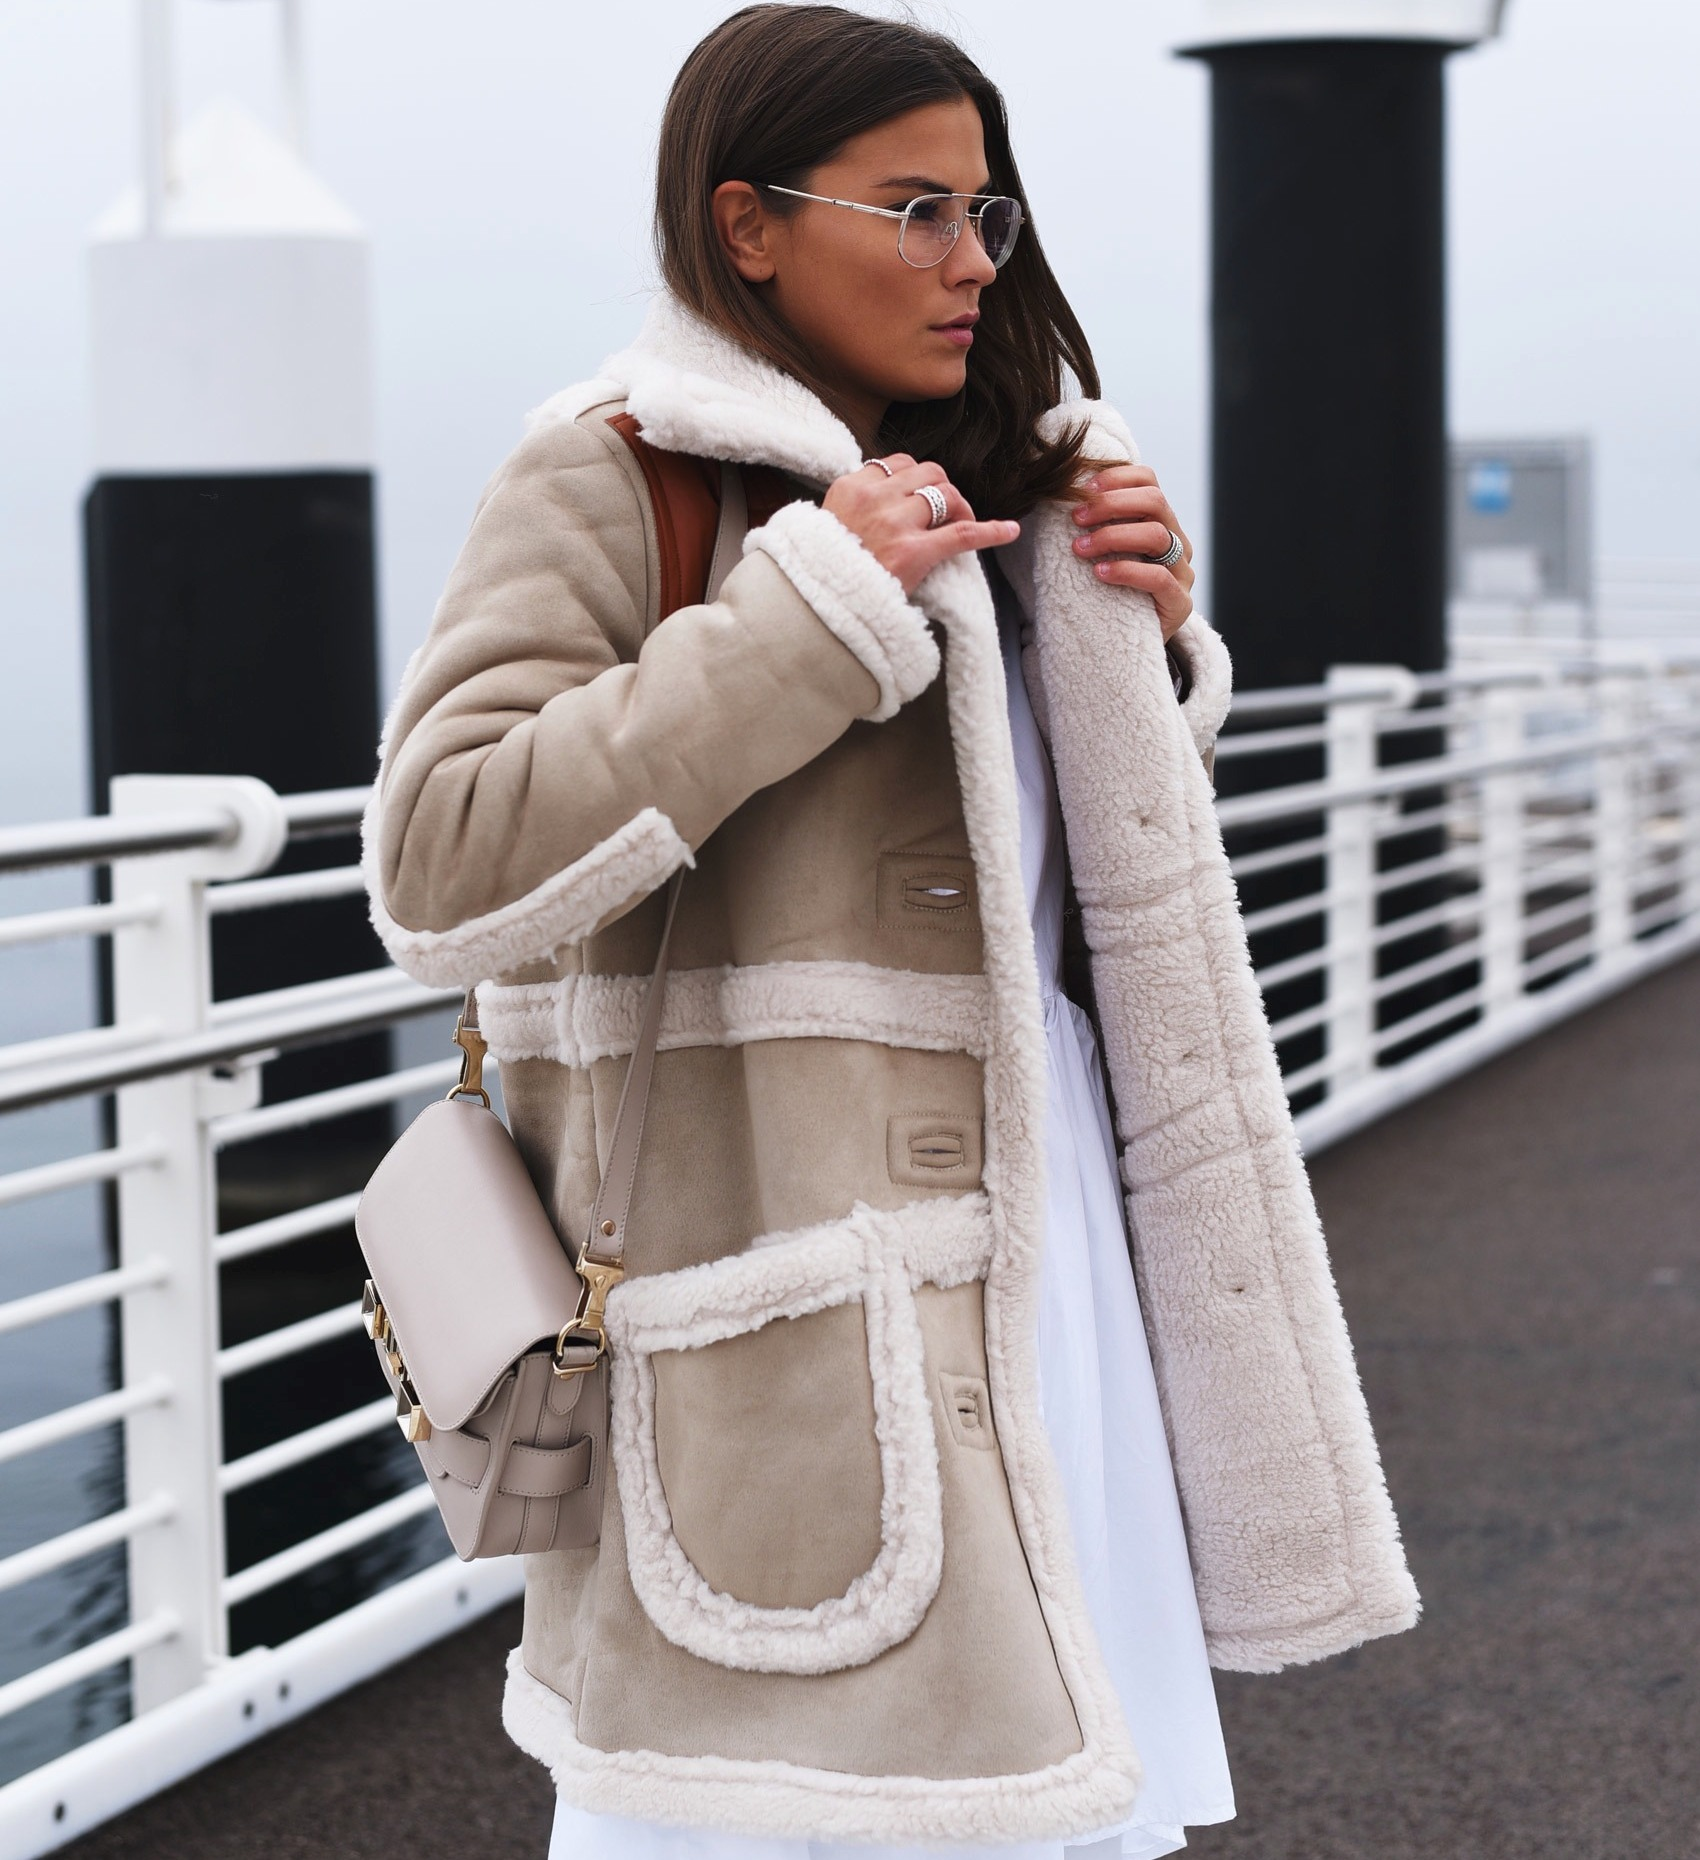 stylish-and-warm-winter-jackets-capes-pilot-jacket-fashiioncarpet